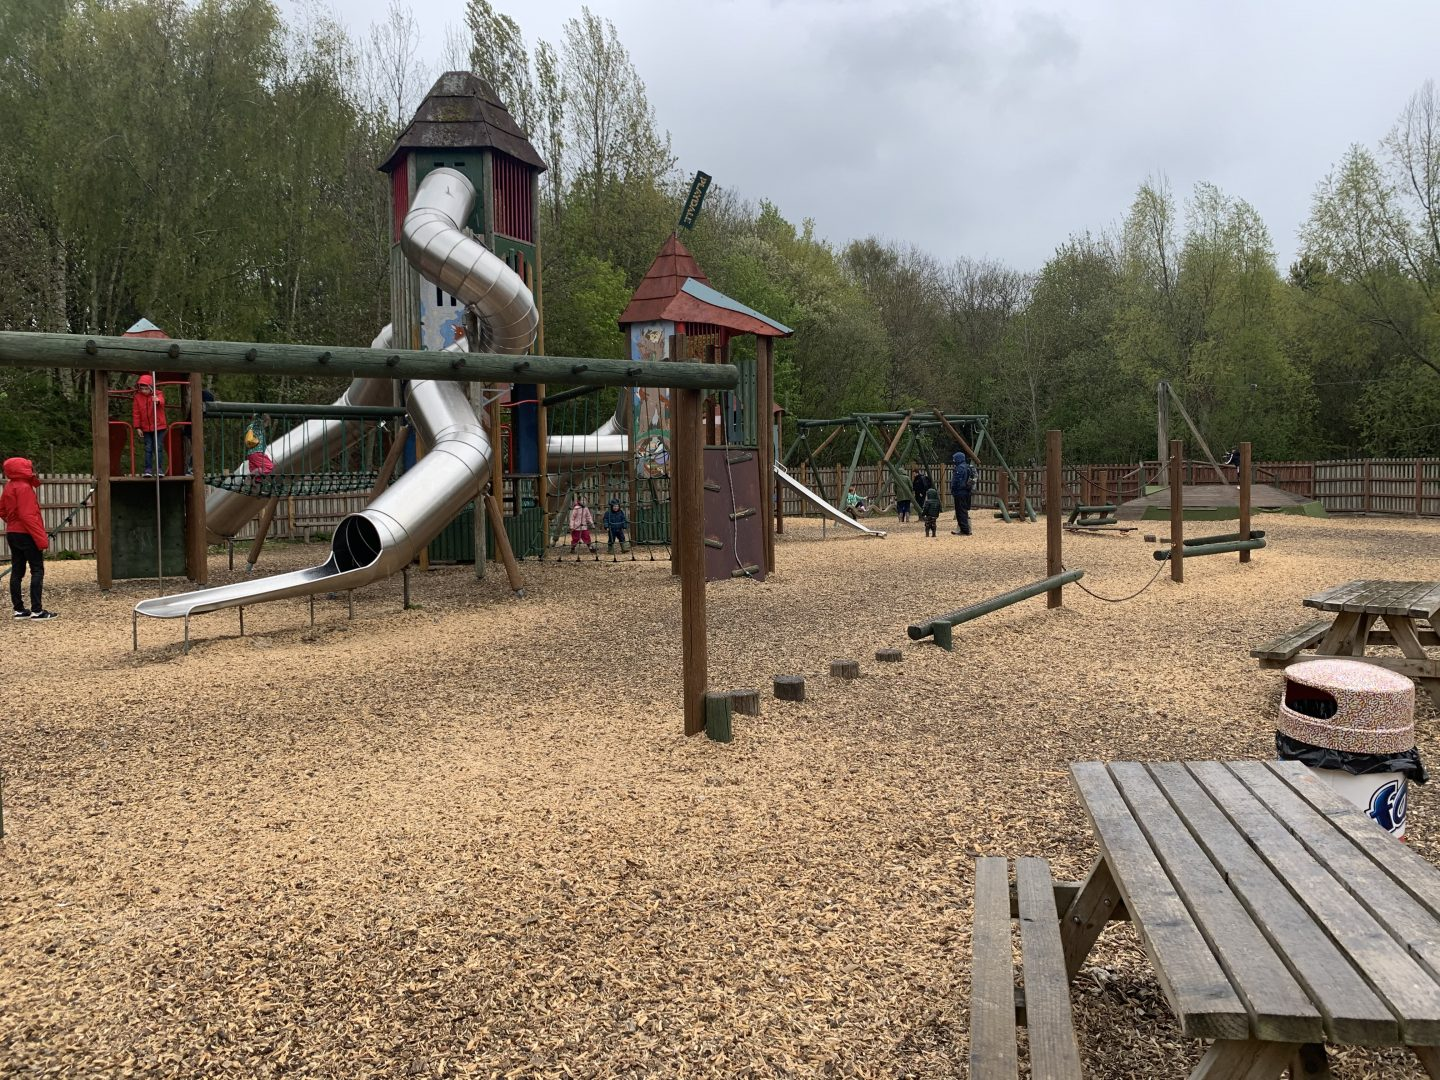 Adventure play area at Waterside Conkers